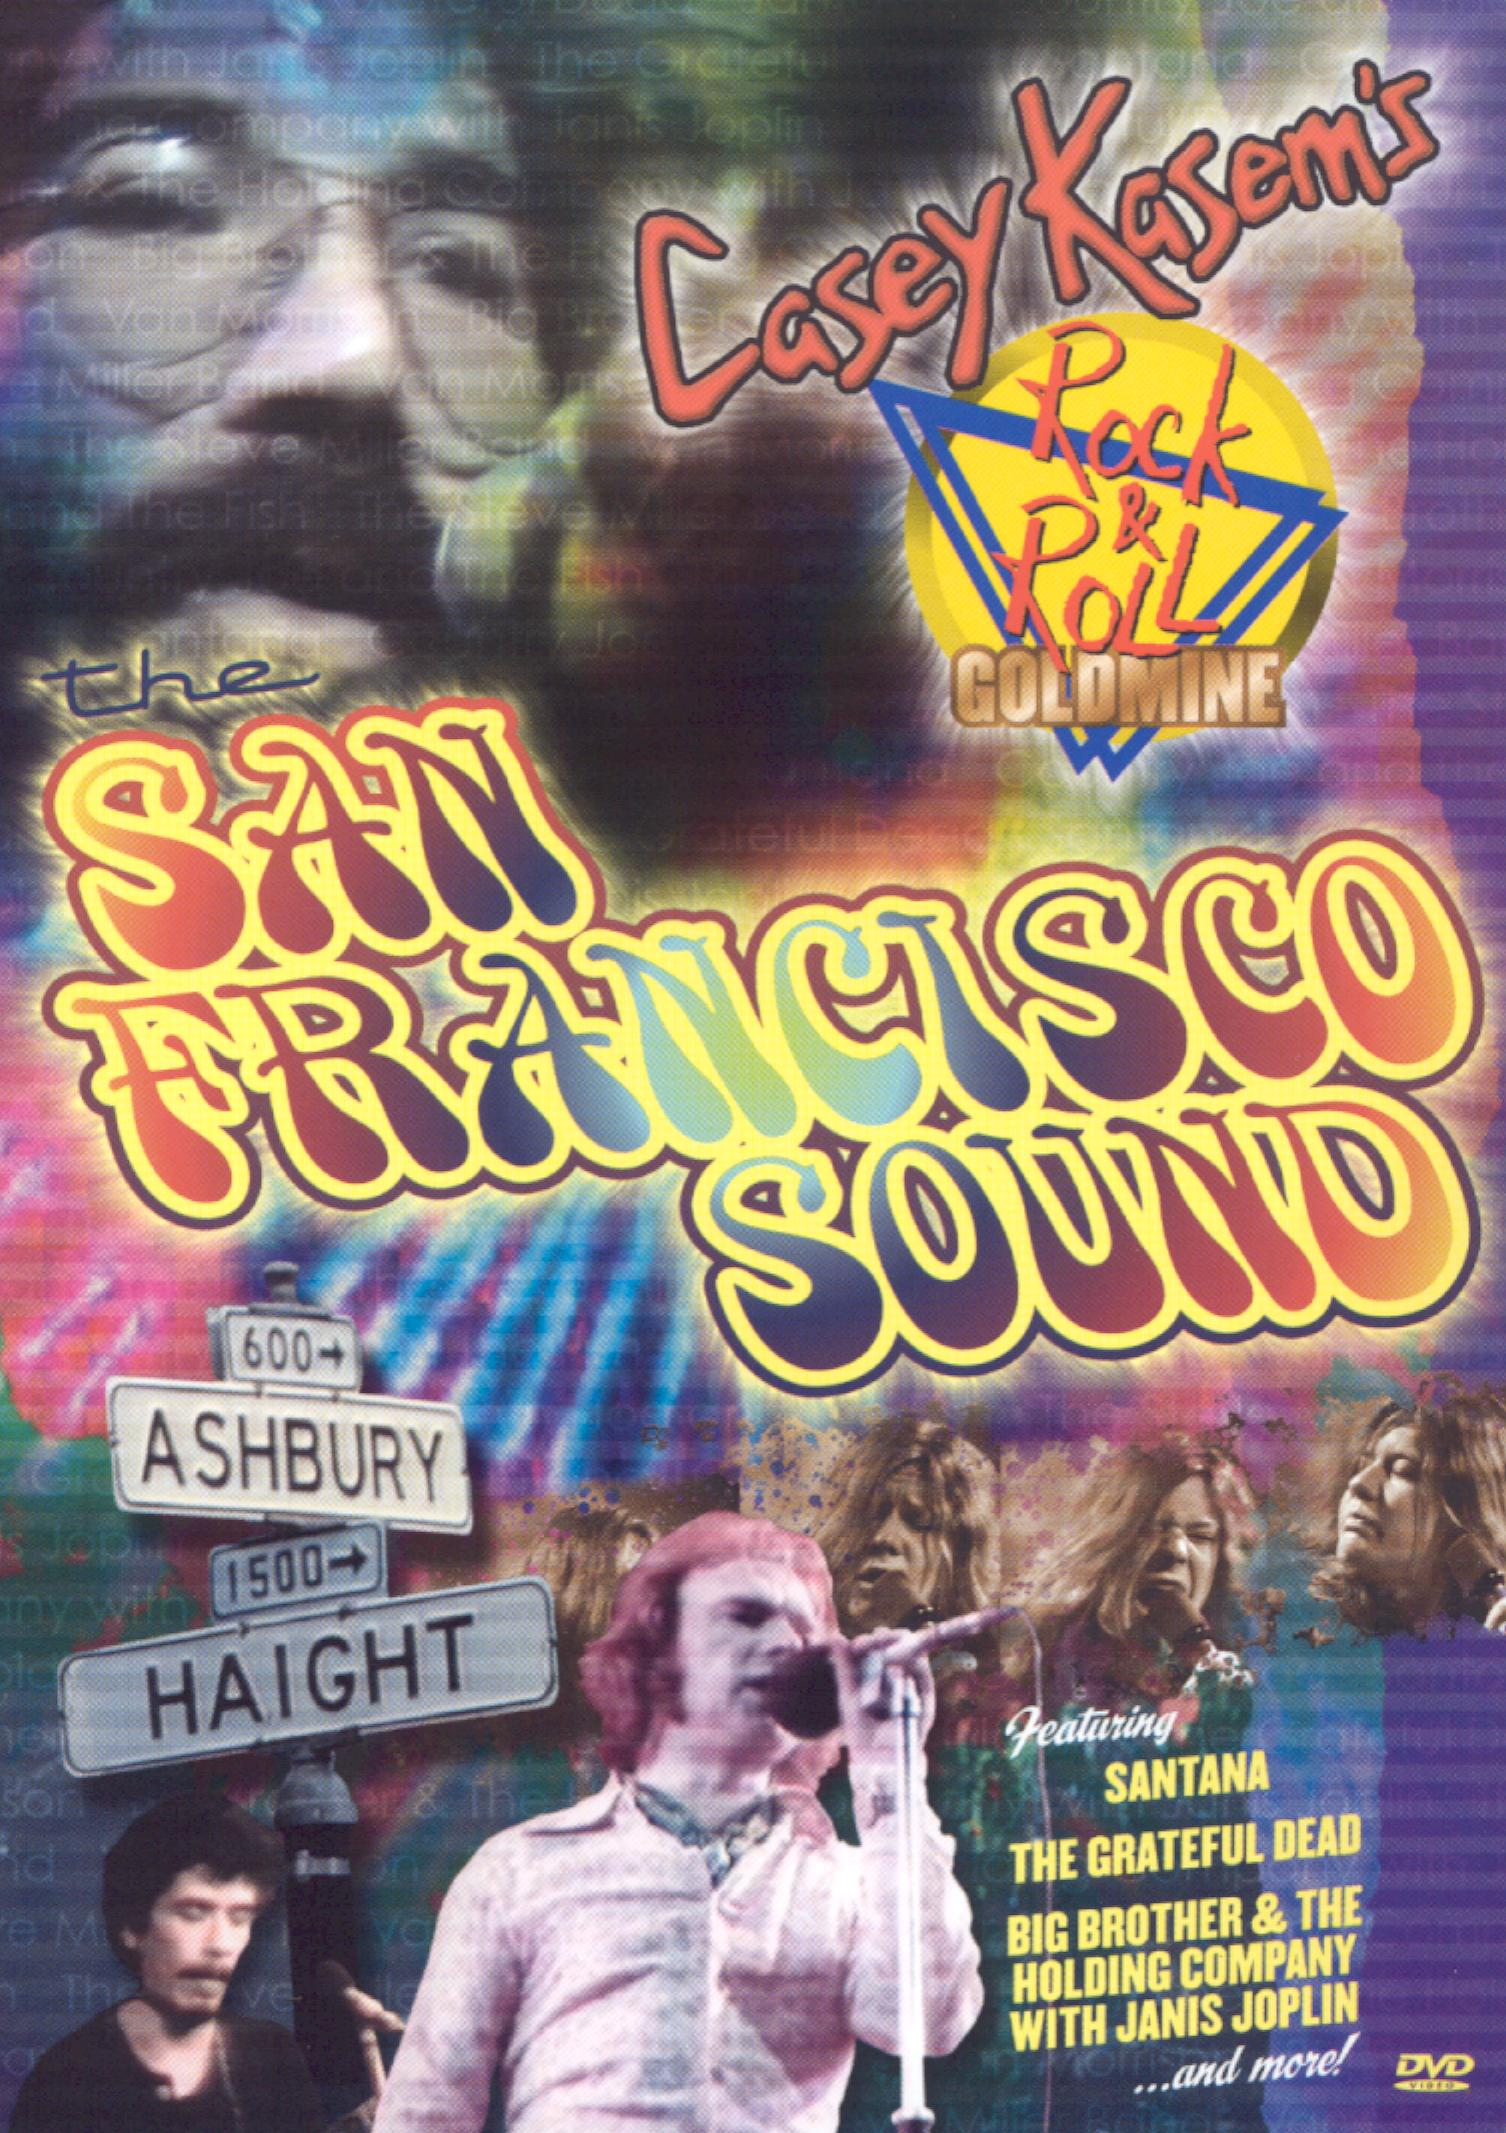 Casey Kasem's Rock 'n' Roll Goldmine: The San Francisco Sound